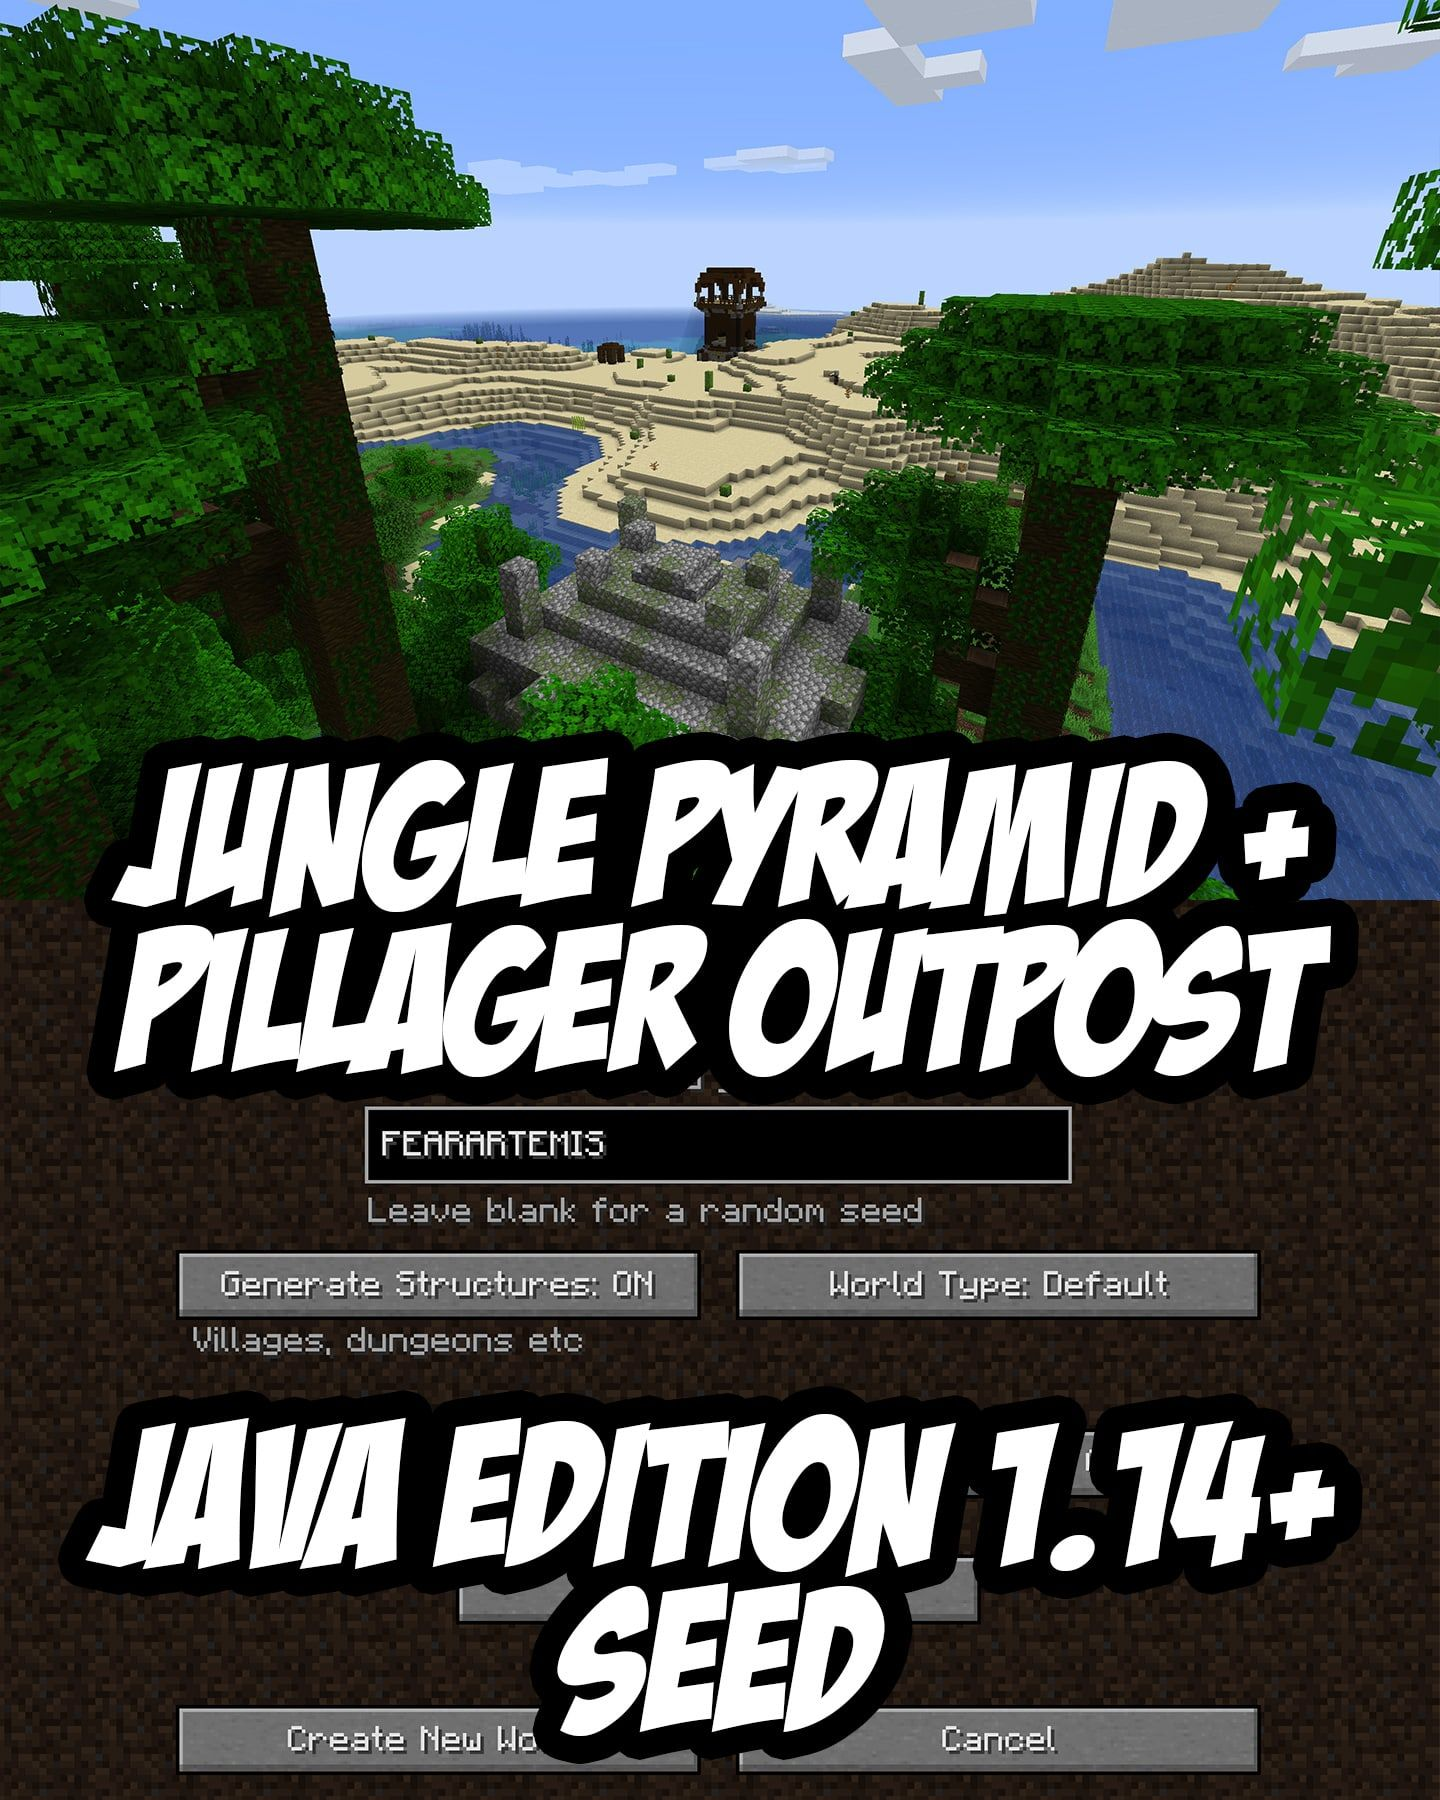 Unreal Spawn Beside A Jungle Temple In View Of A Pillager Outpost Minecraft Java Edition 1 14 Seed Fear Minecraft Blueprints Minecraft Cheats Minecraft Seed